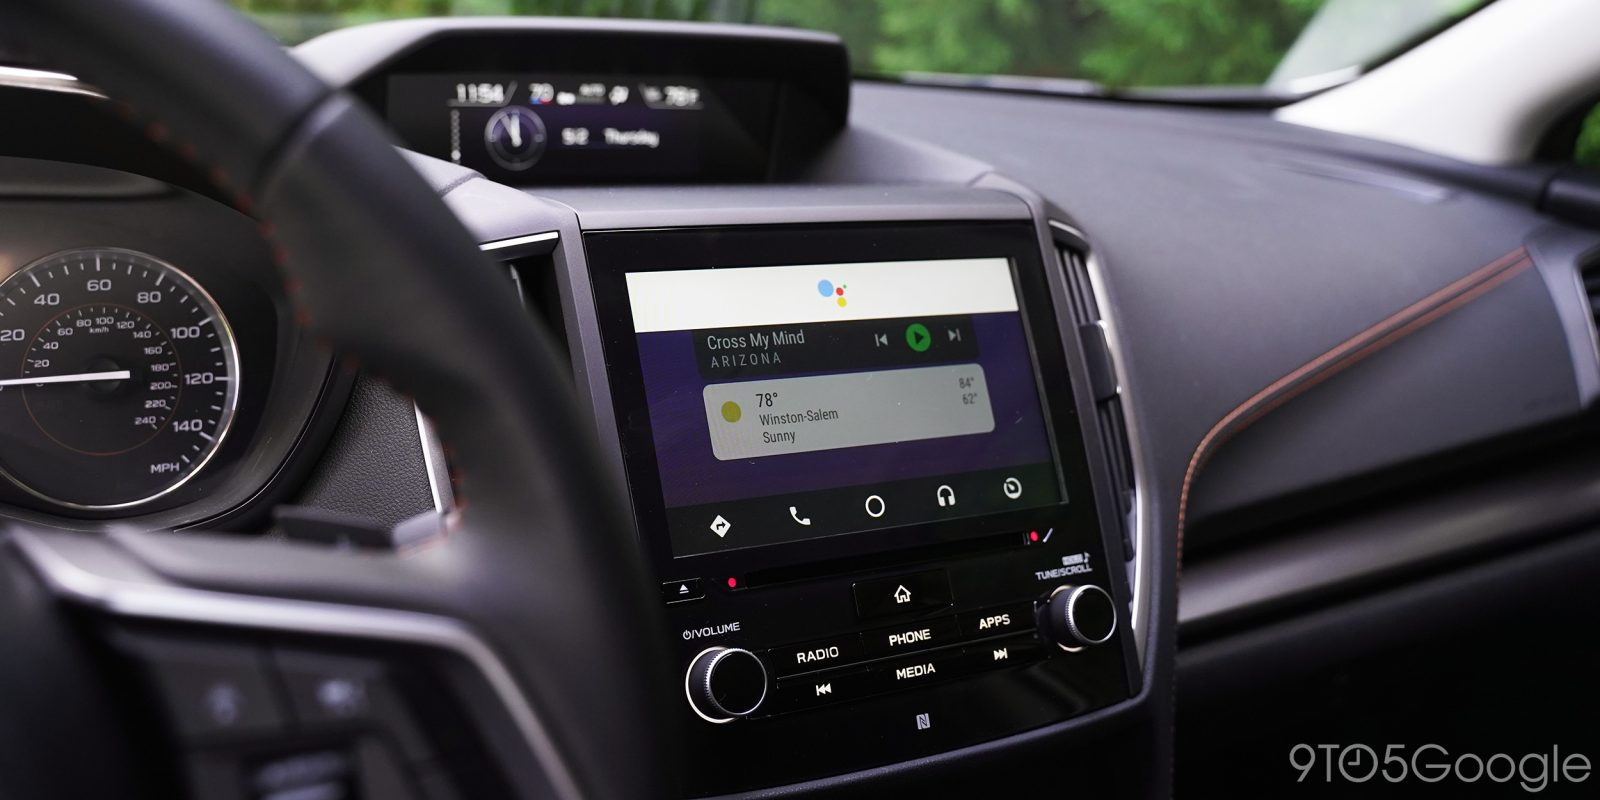 Google Assistant bug mutes over Bluetooth, Android Auto - 9to5Google